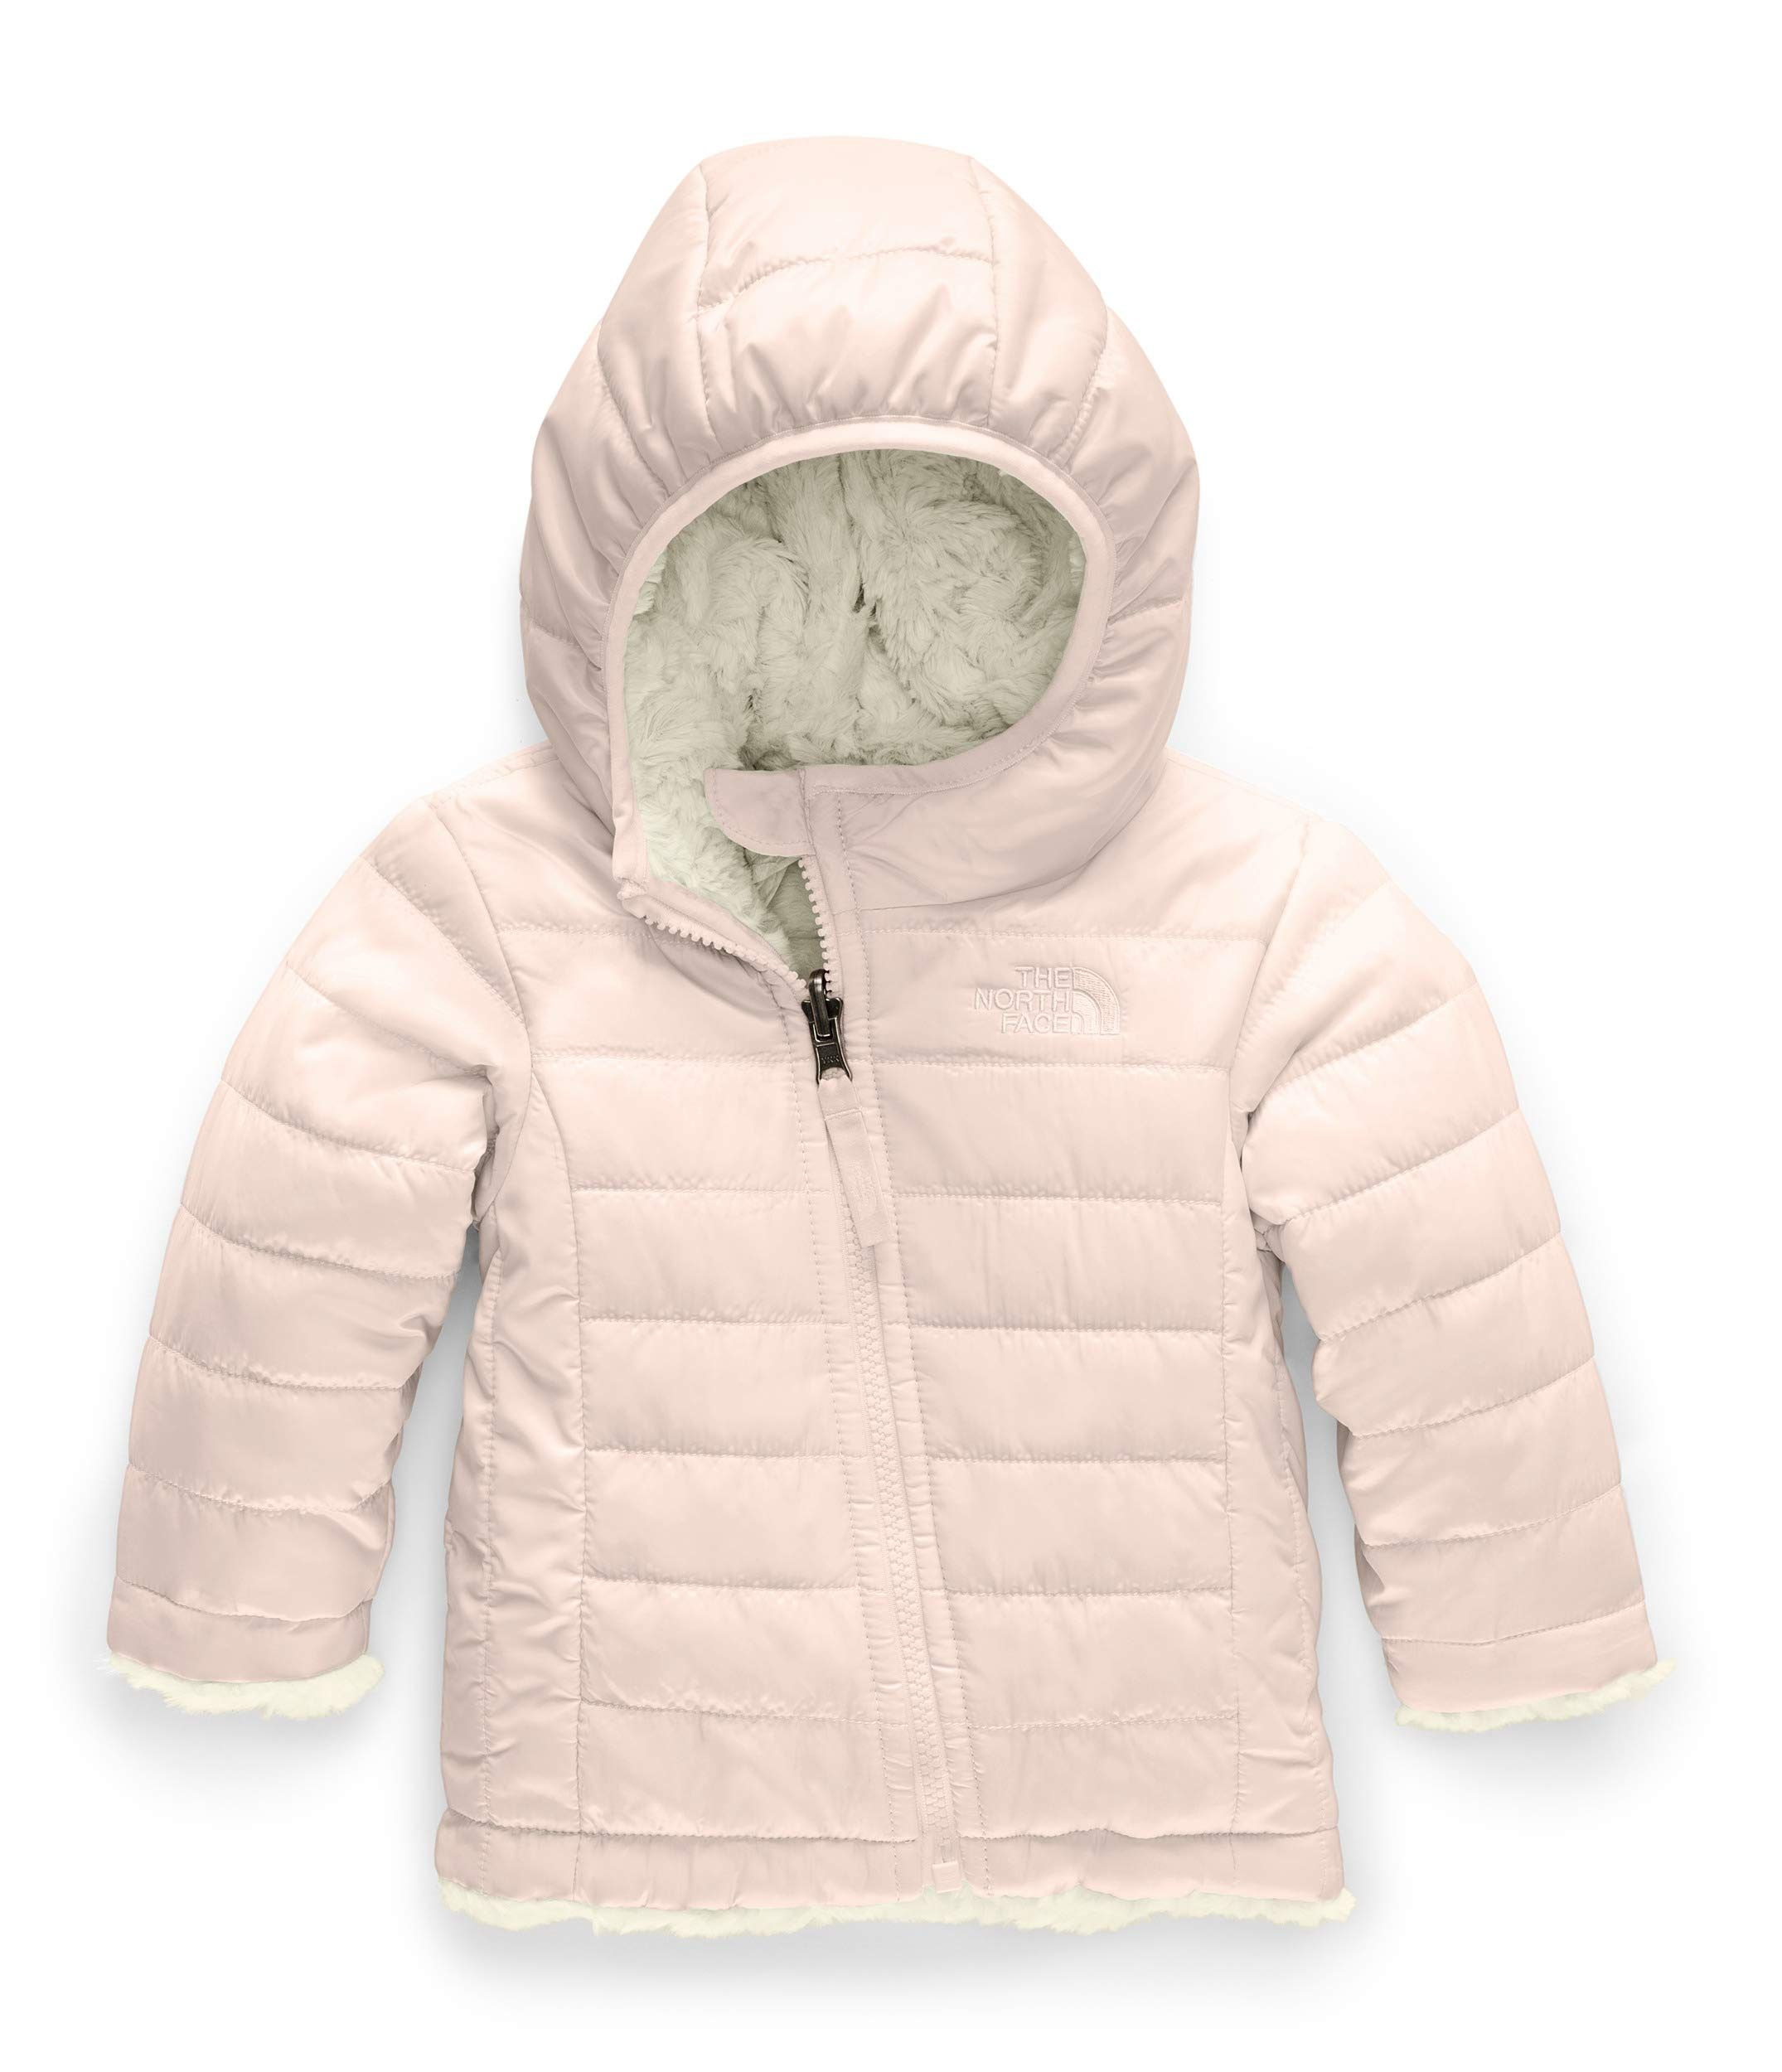 The North Face Infant Reversible Mossbud Swirl Hoodie Purdy Pink Vintage White 6 12 Months Examine T North Face Mossbud North Face Kids Baby Girl Jackets [ 2500 x 2150 Pixel ]